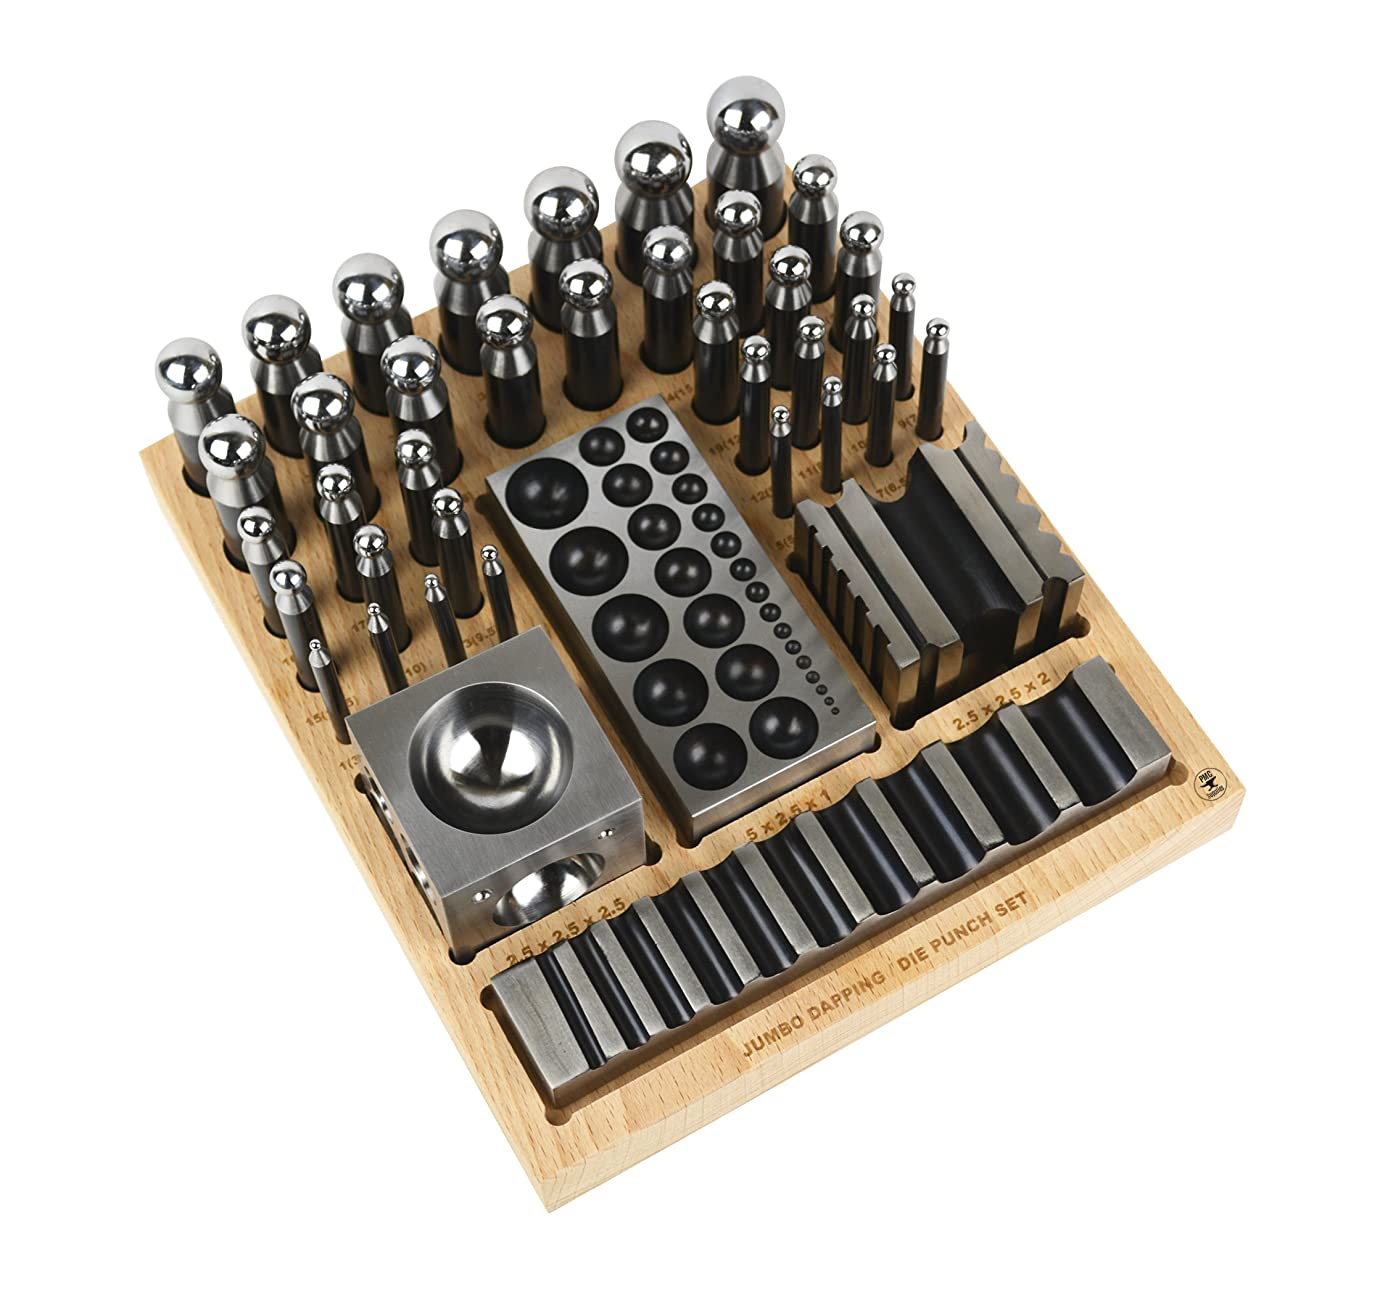 Complete Steel Dapping Doming Punch Set with Wooden Block Base Tool for Jewelry Making Metal Forming